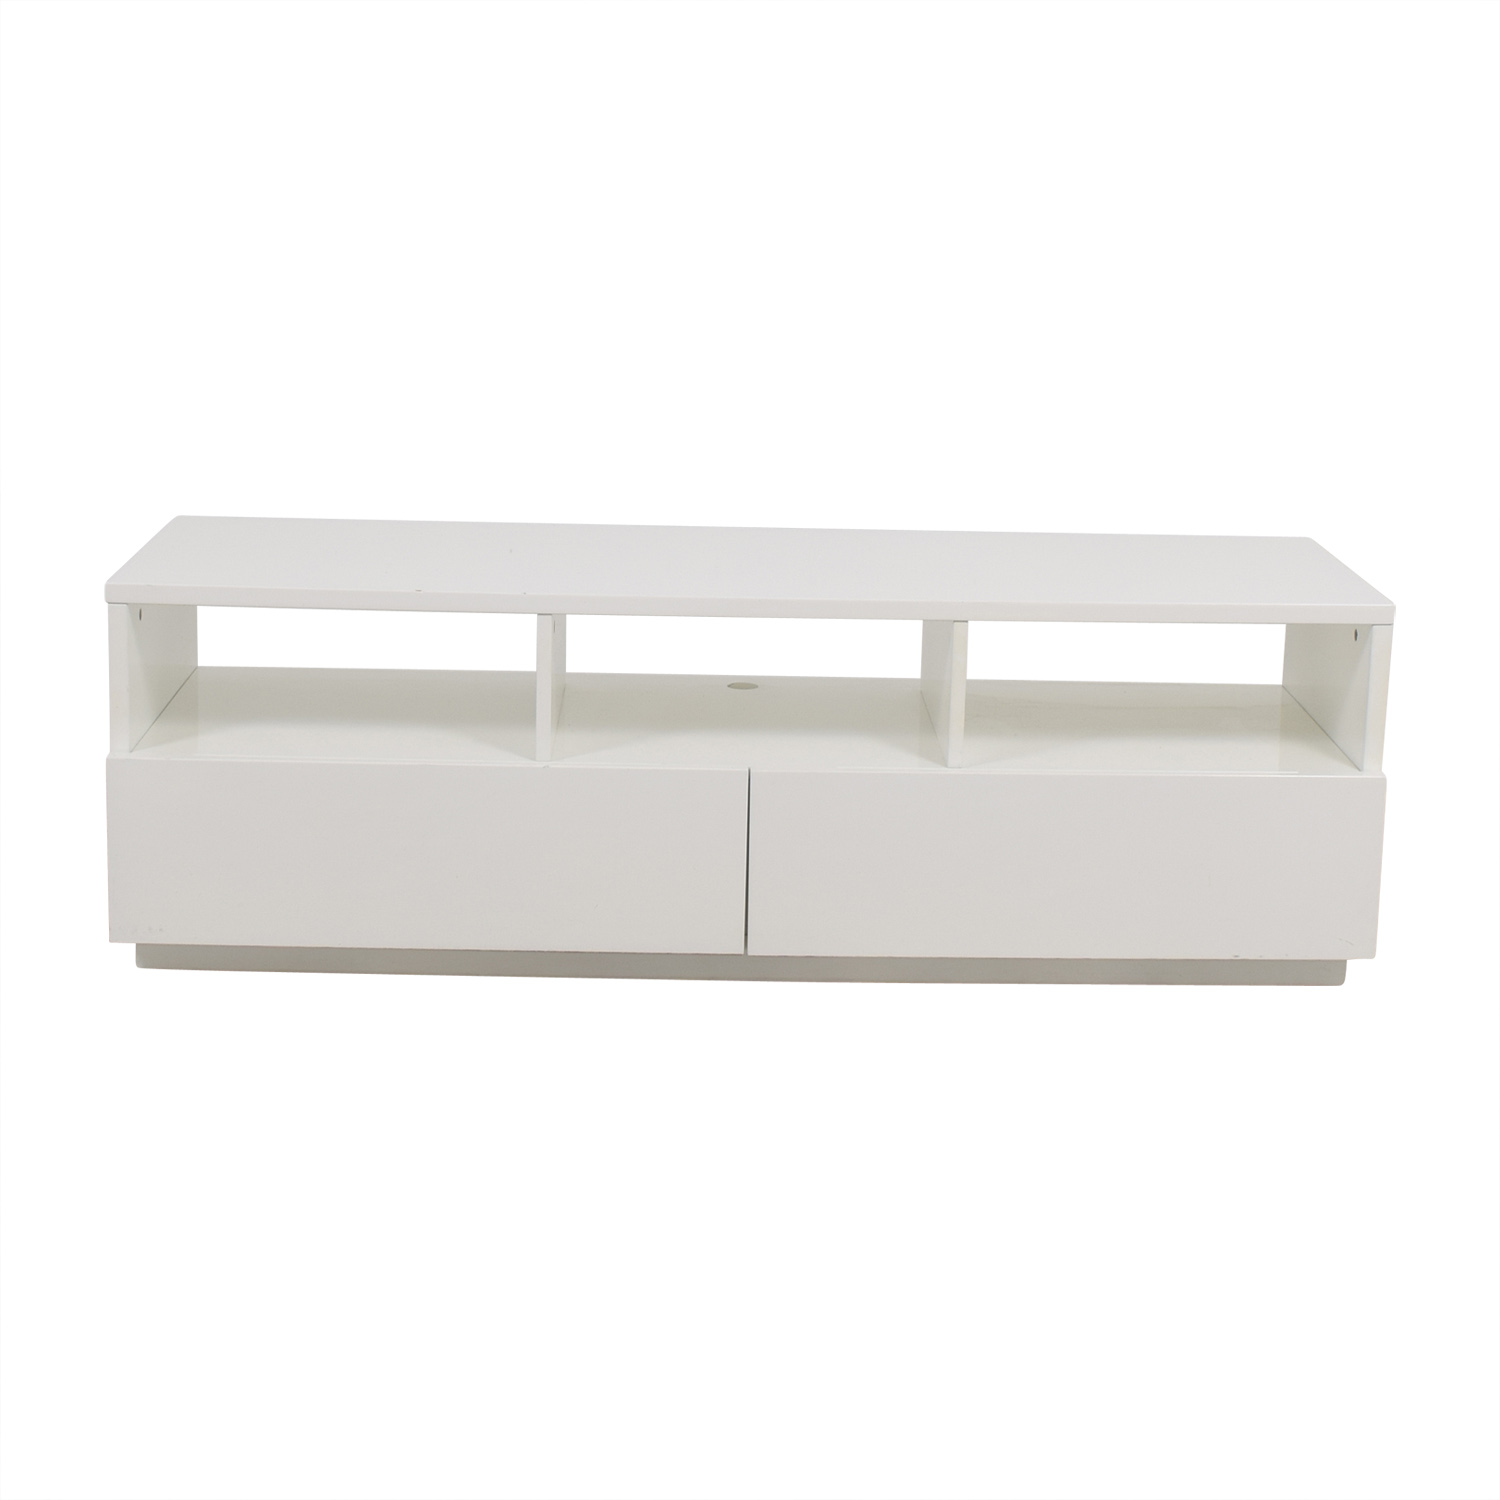 CB2 Chill White Media Console With Two Drawers CB2